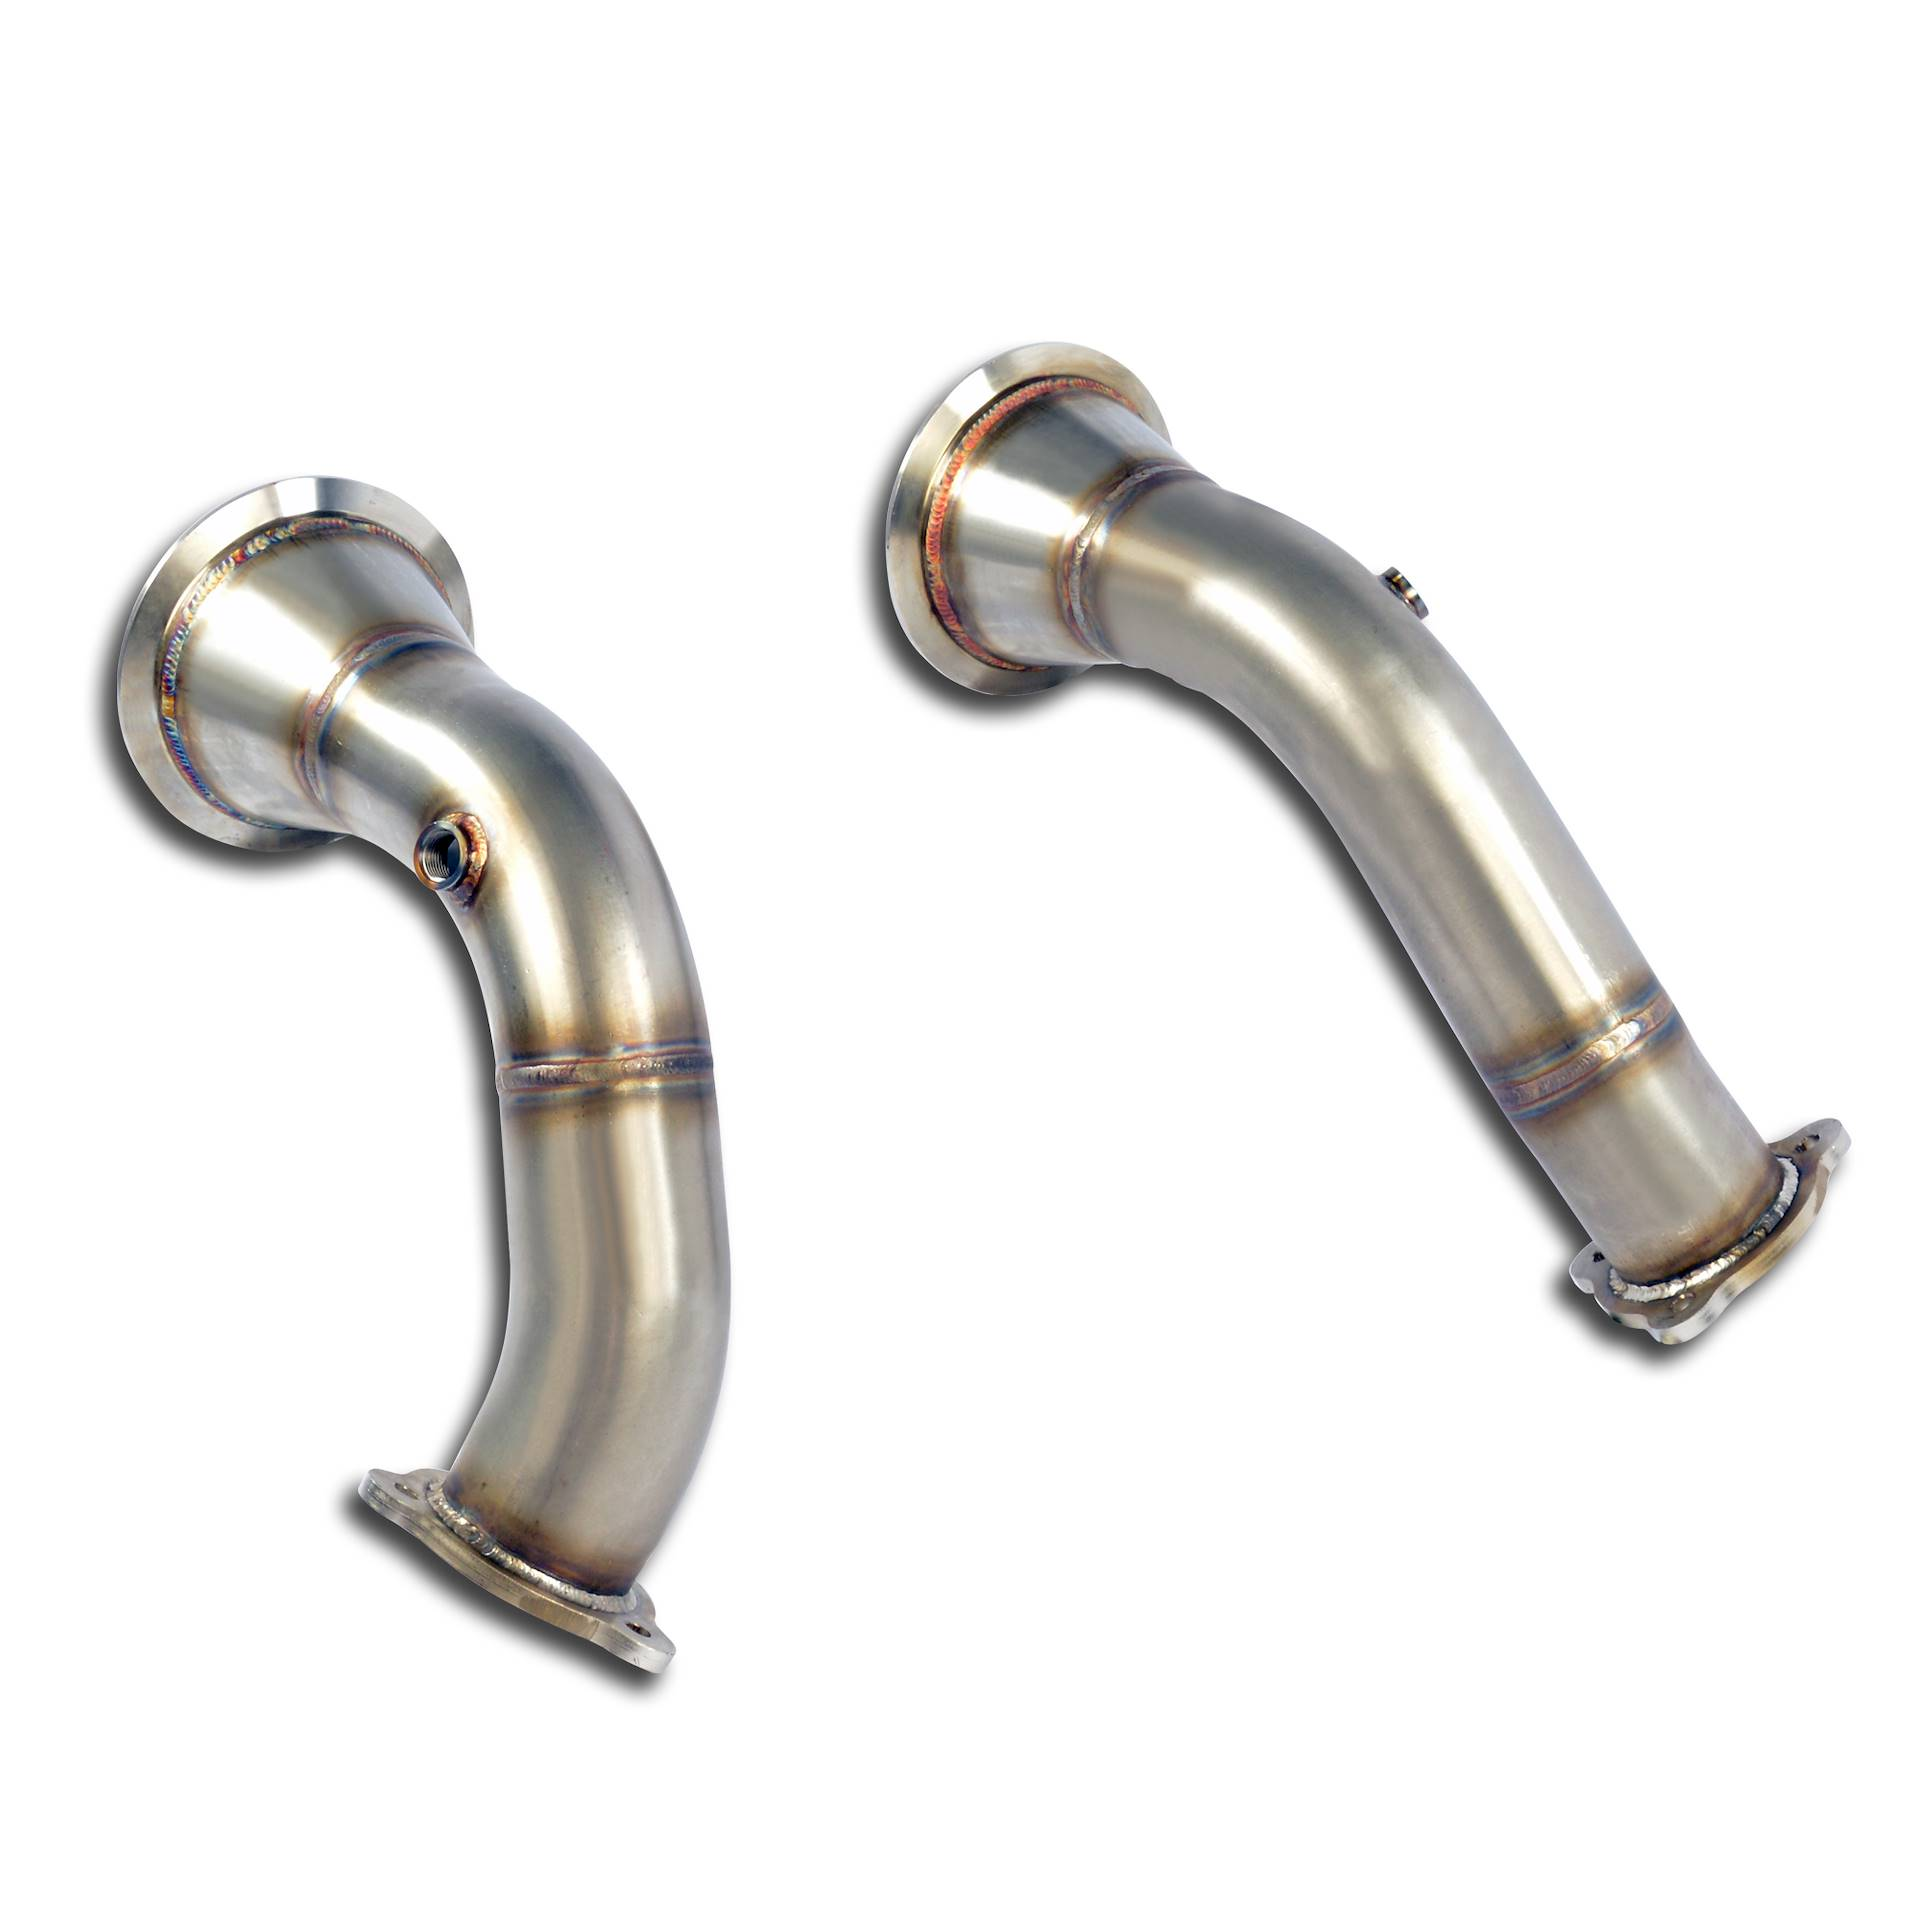 Performance sport exhaust for Audi RS4 B9 with valve, AUDI